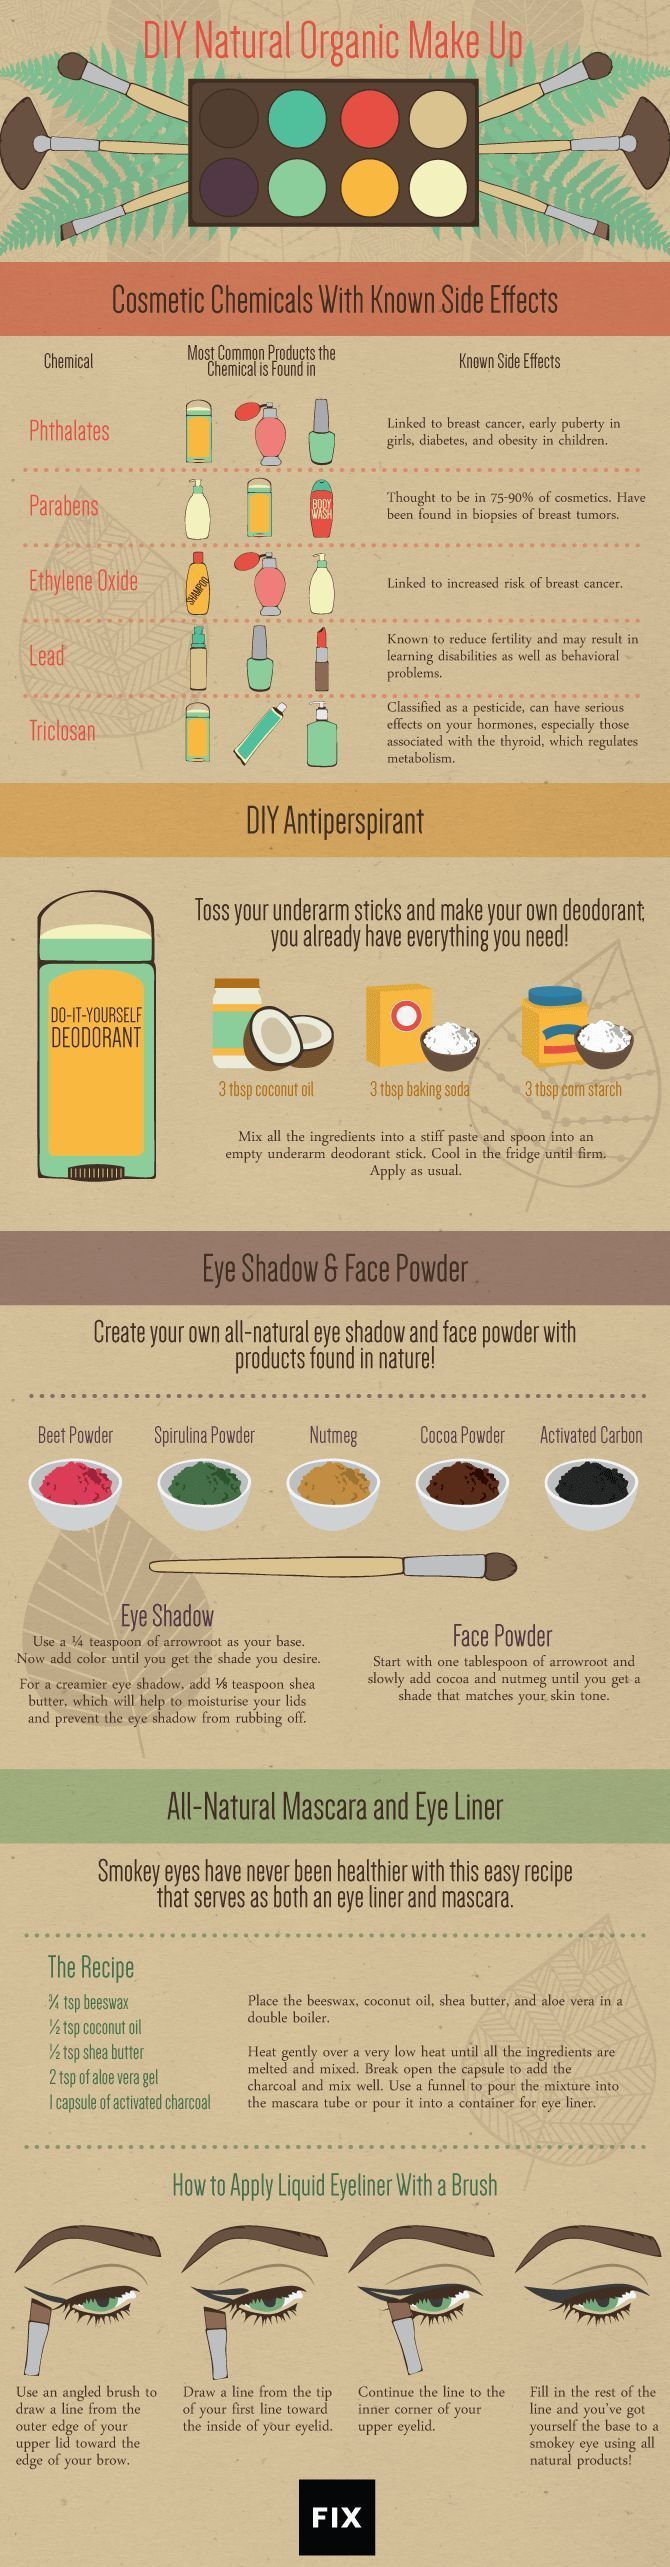 Make Your Own Deodorant & Other Natural Beauty Products (Infographic)